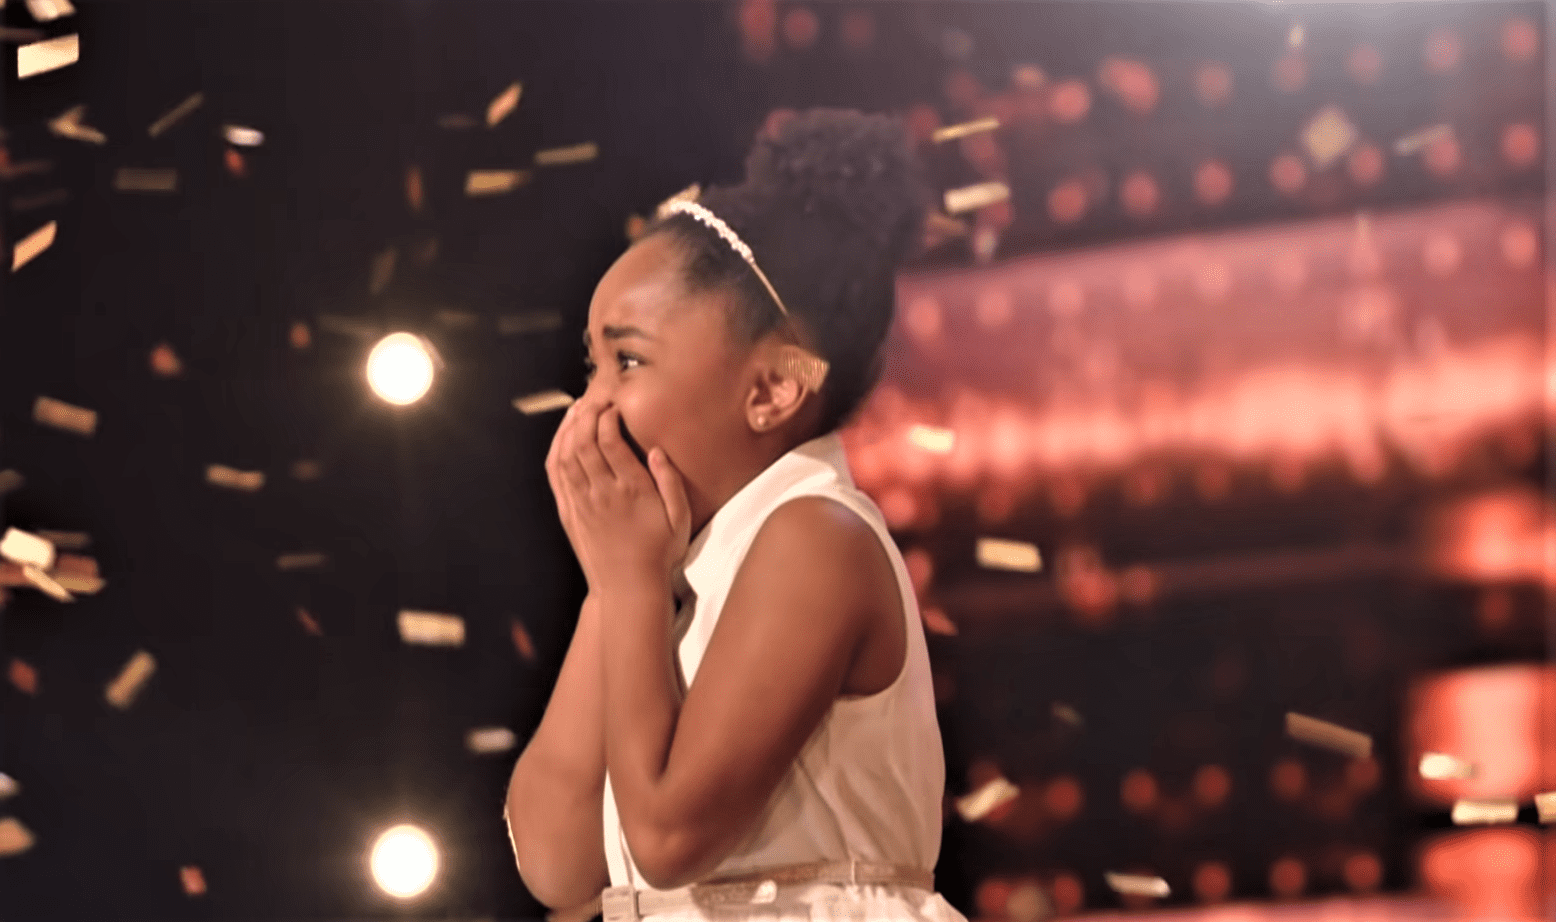 """9-year-old Victory Brinker's emotional reaction after she received 4 Golden Buzzers at """"America's Got Talent.""""   Source: youtube.com/America's Got Talent"""